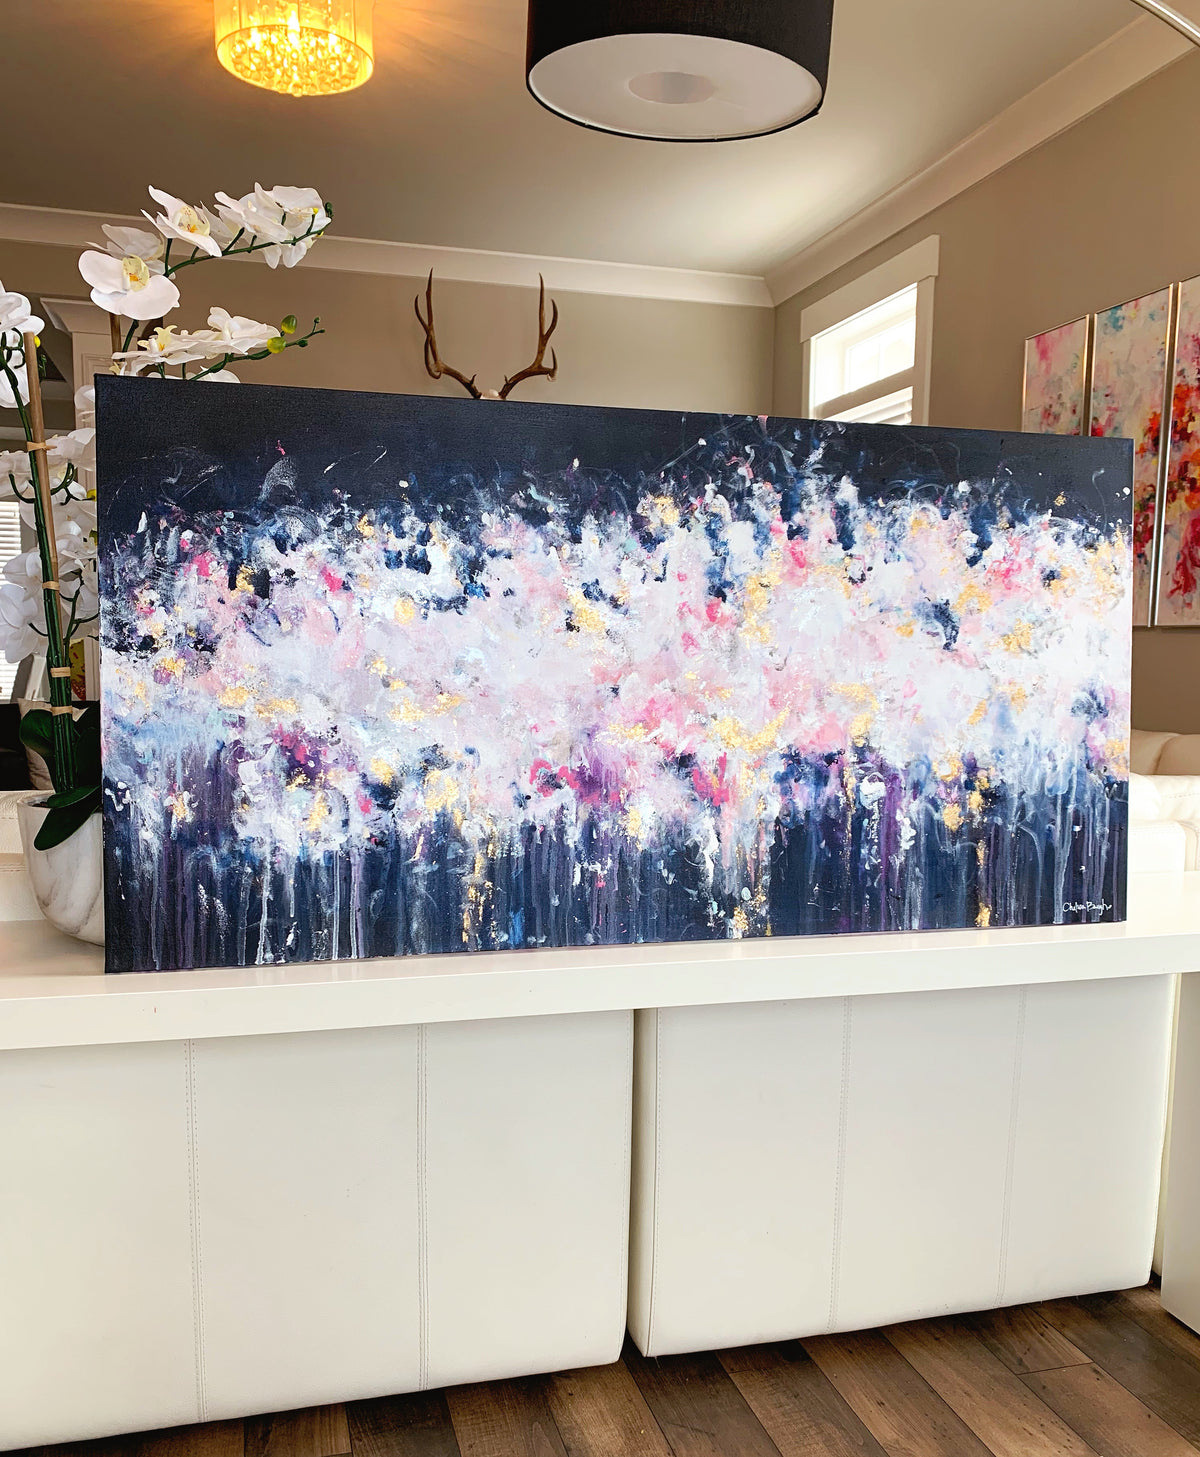 "'The Other Side' 24x48"" SOLD"